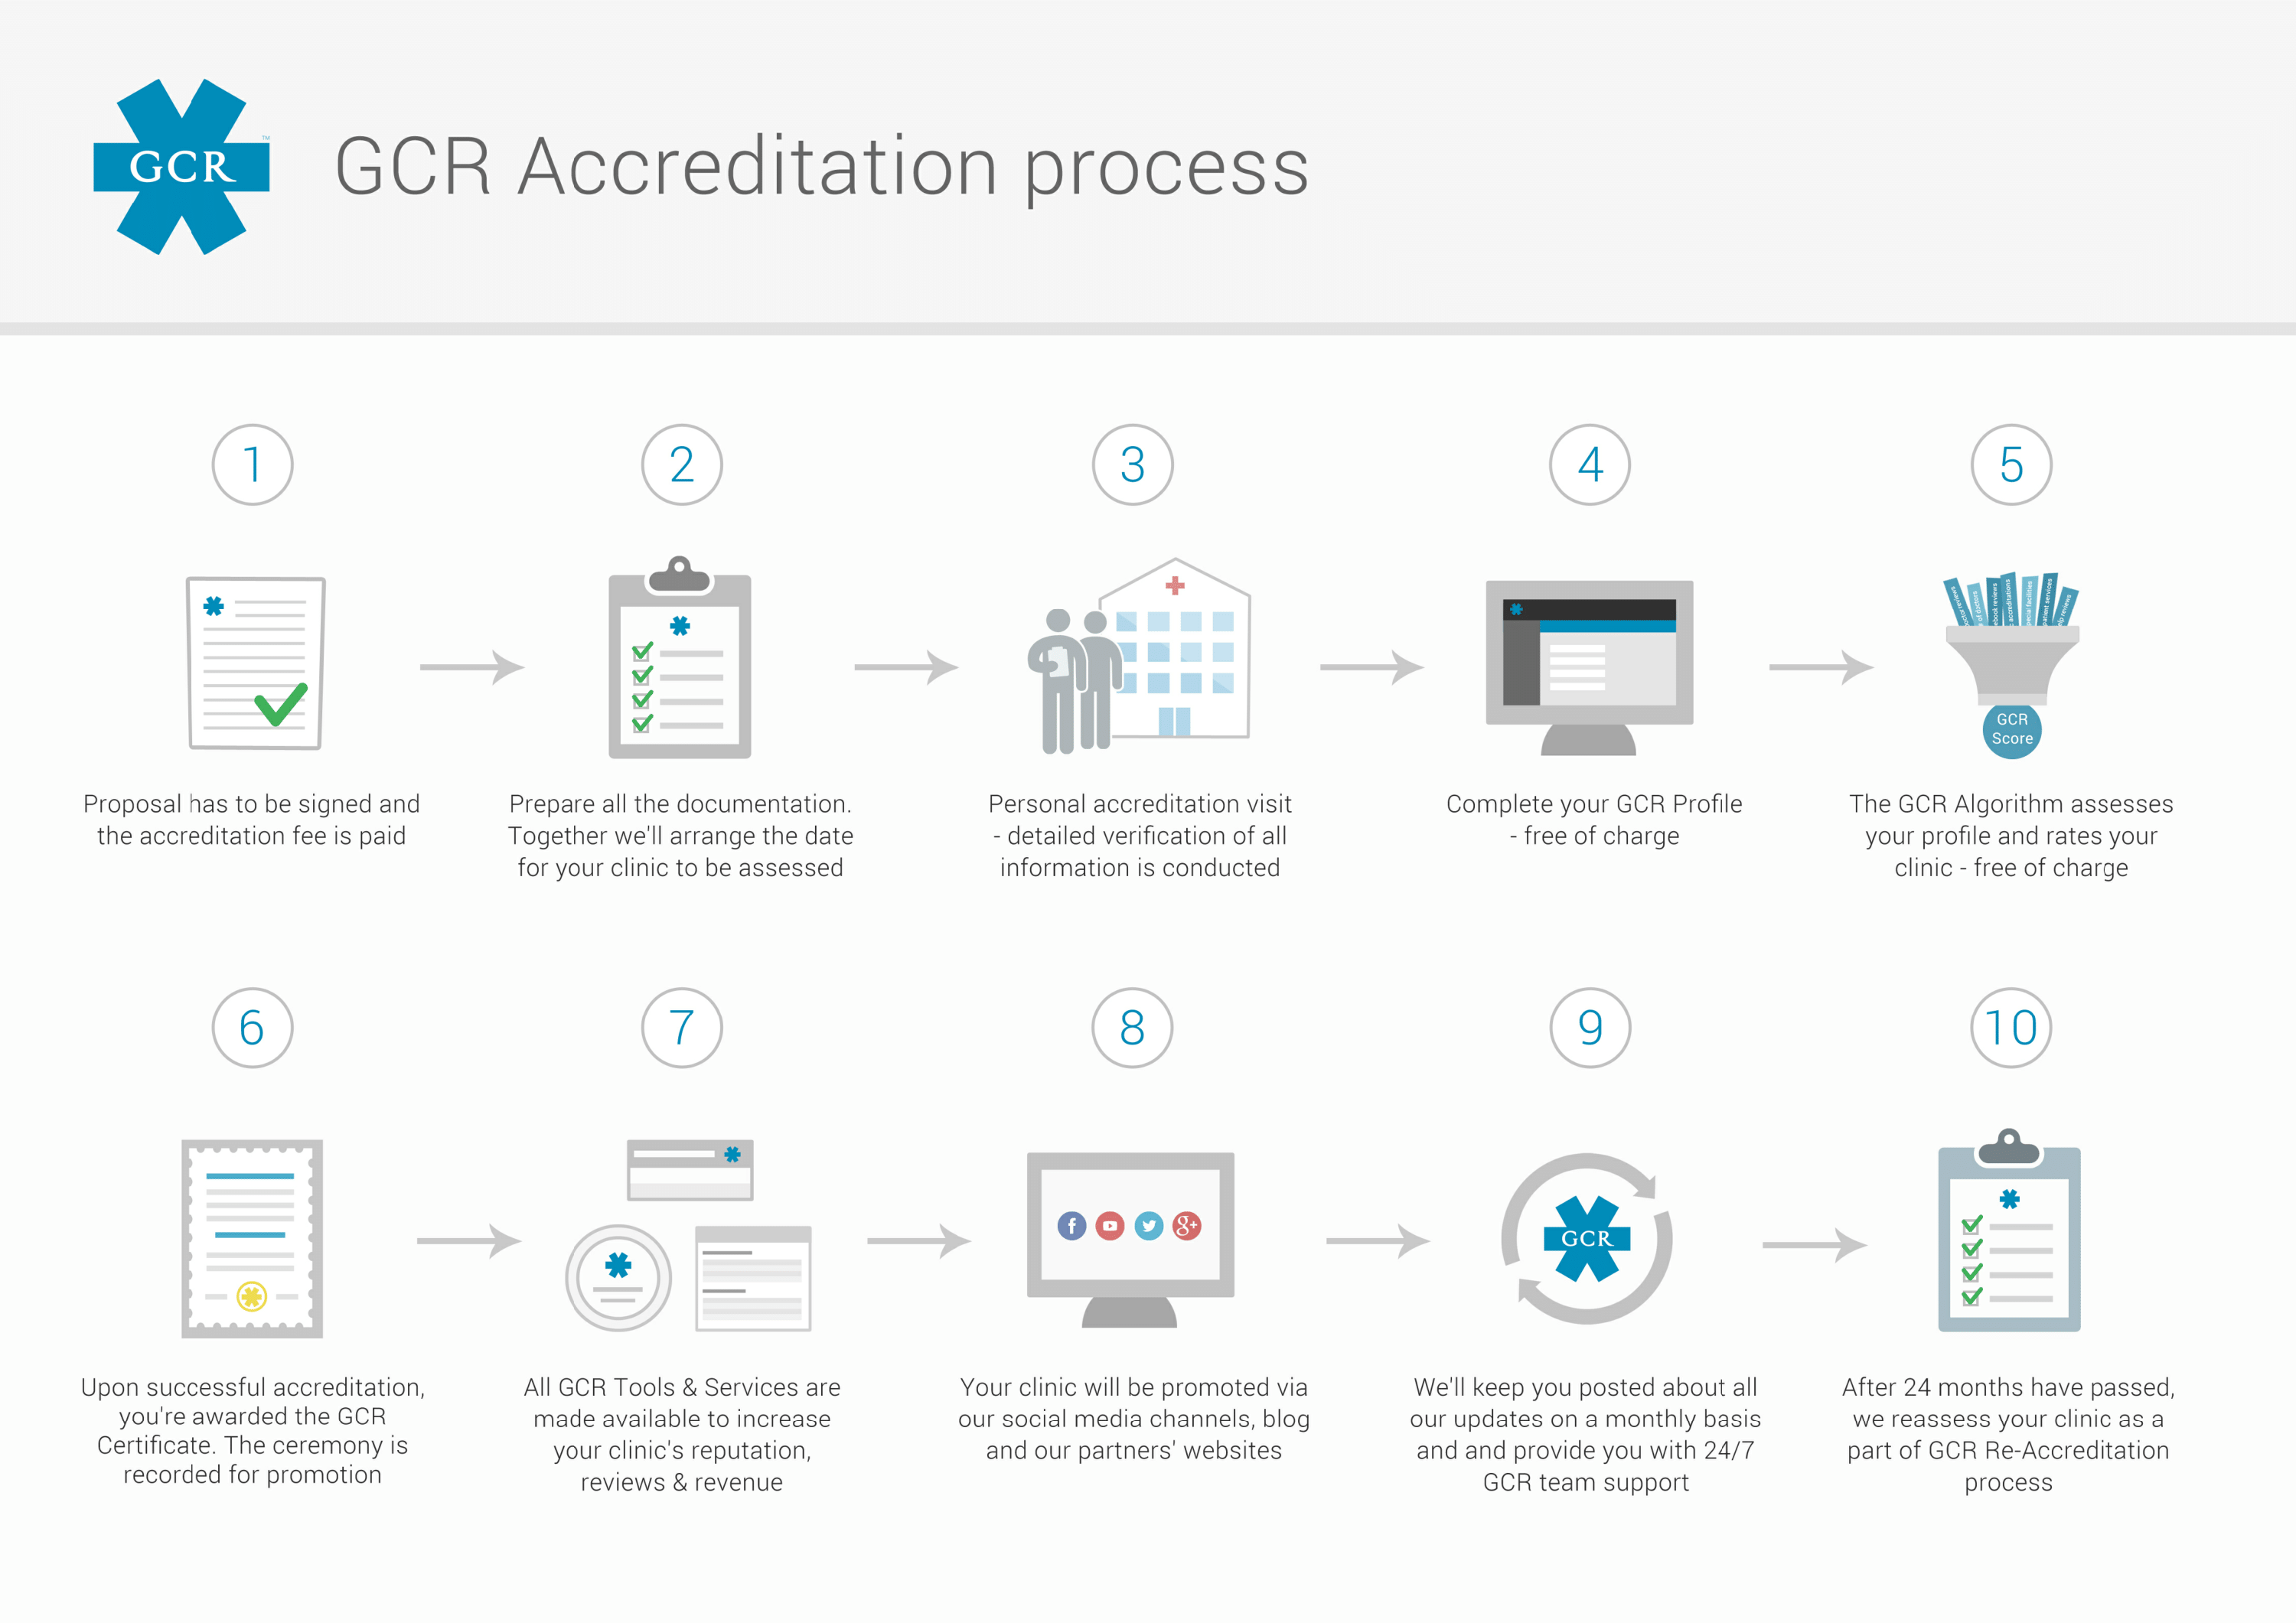 GCR Accreditation process